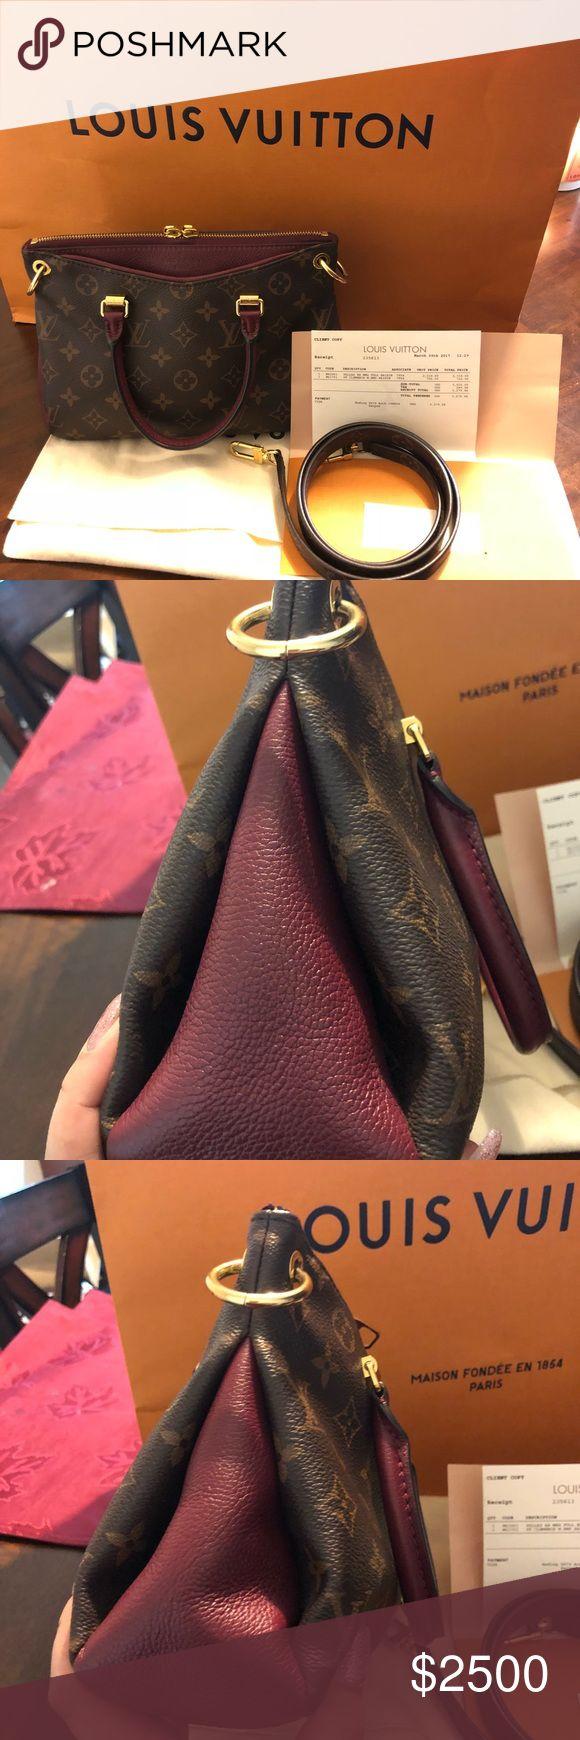 Authentic Louis Vuitton Pallas BB Full Raisin Absolutely gorgeous bag!! Hate to get rid of, but I'm ready for something else lol  This color is hard to find & always SOLD OUT!  Very minimal wear, still looks new!  Strap is brand new! Had it replaced 3 months ago. Datecode: SD4196 Comes with dust bag & receipt (copy)  Only interested in trading for LV bag Priced high due to Poshmark fees Louis Vuitton Bags Crossbody Bags